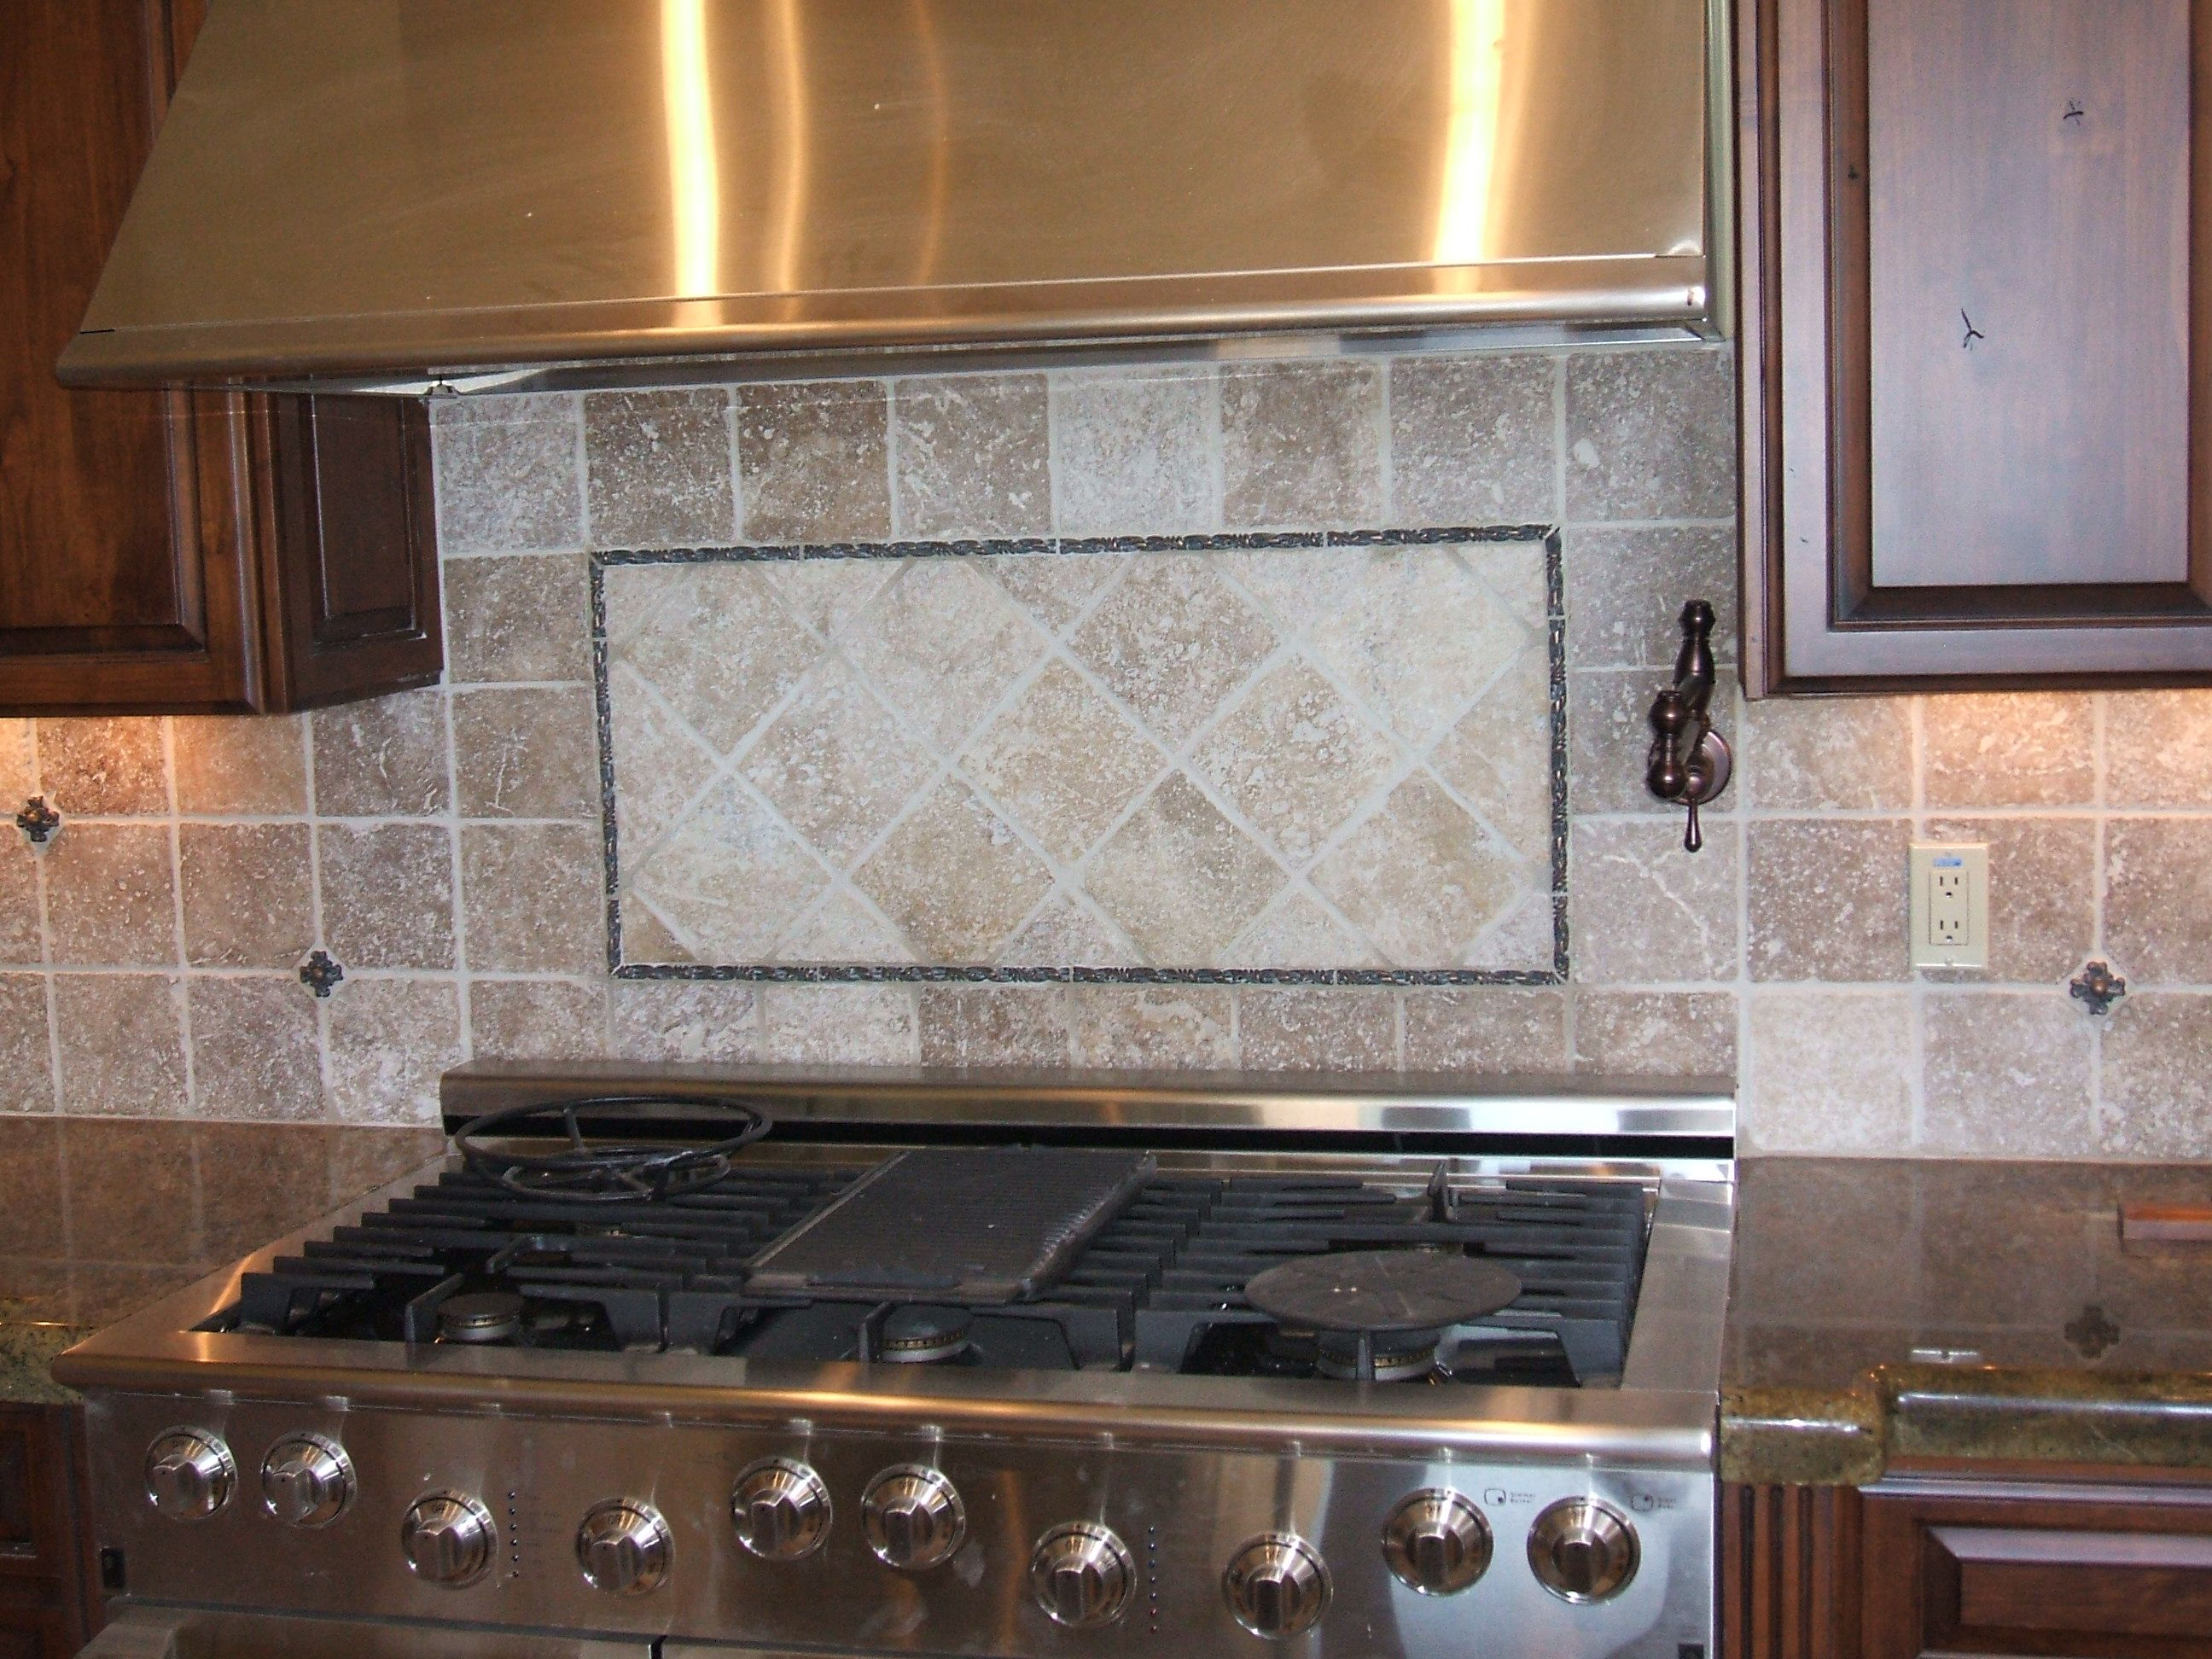 image of kitchen backsplash designs for kitchen colors and